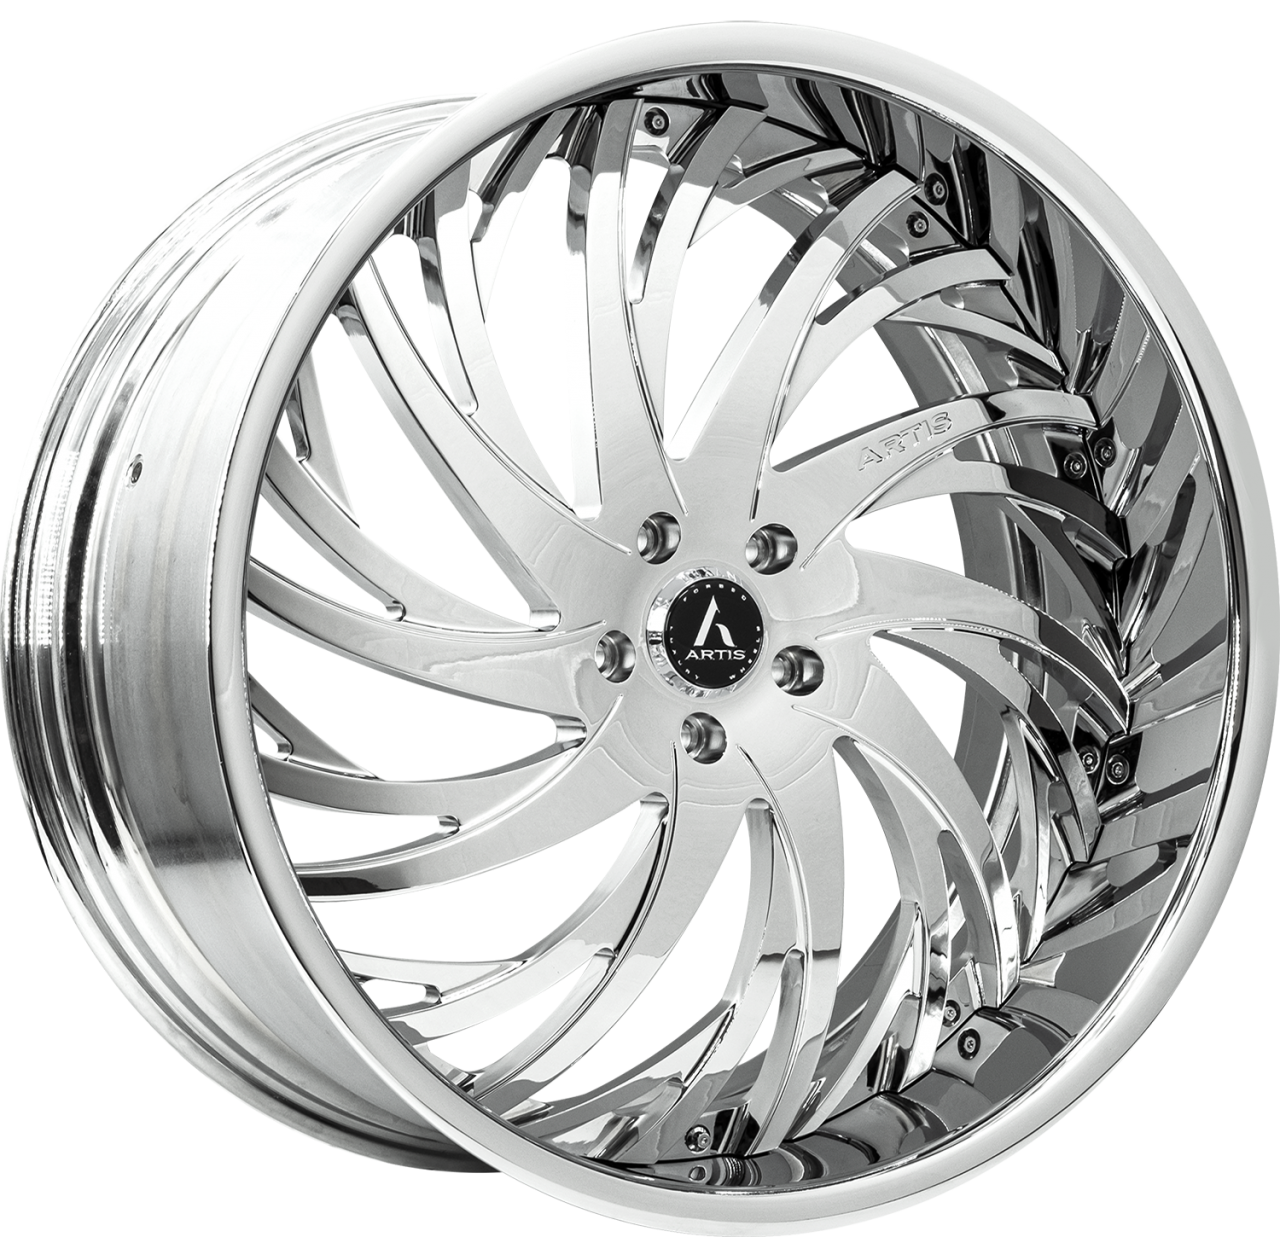 Artis Forged Decatur wheel with Chrome finish